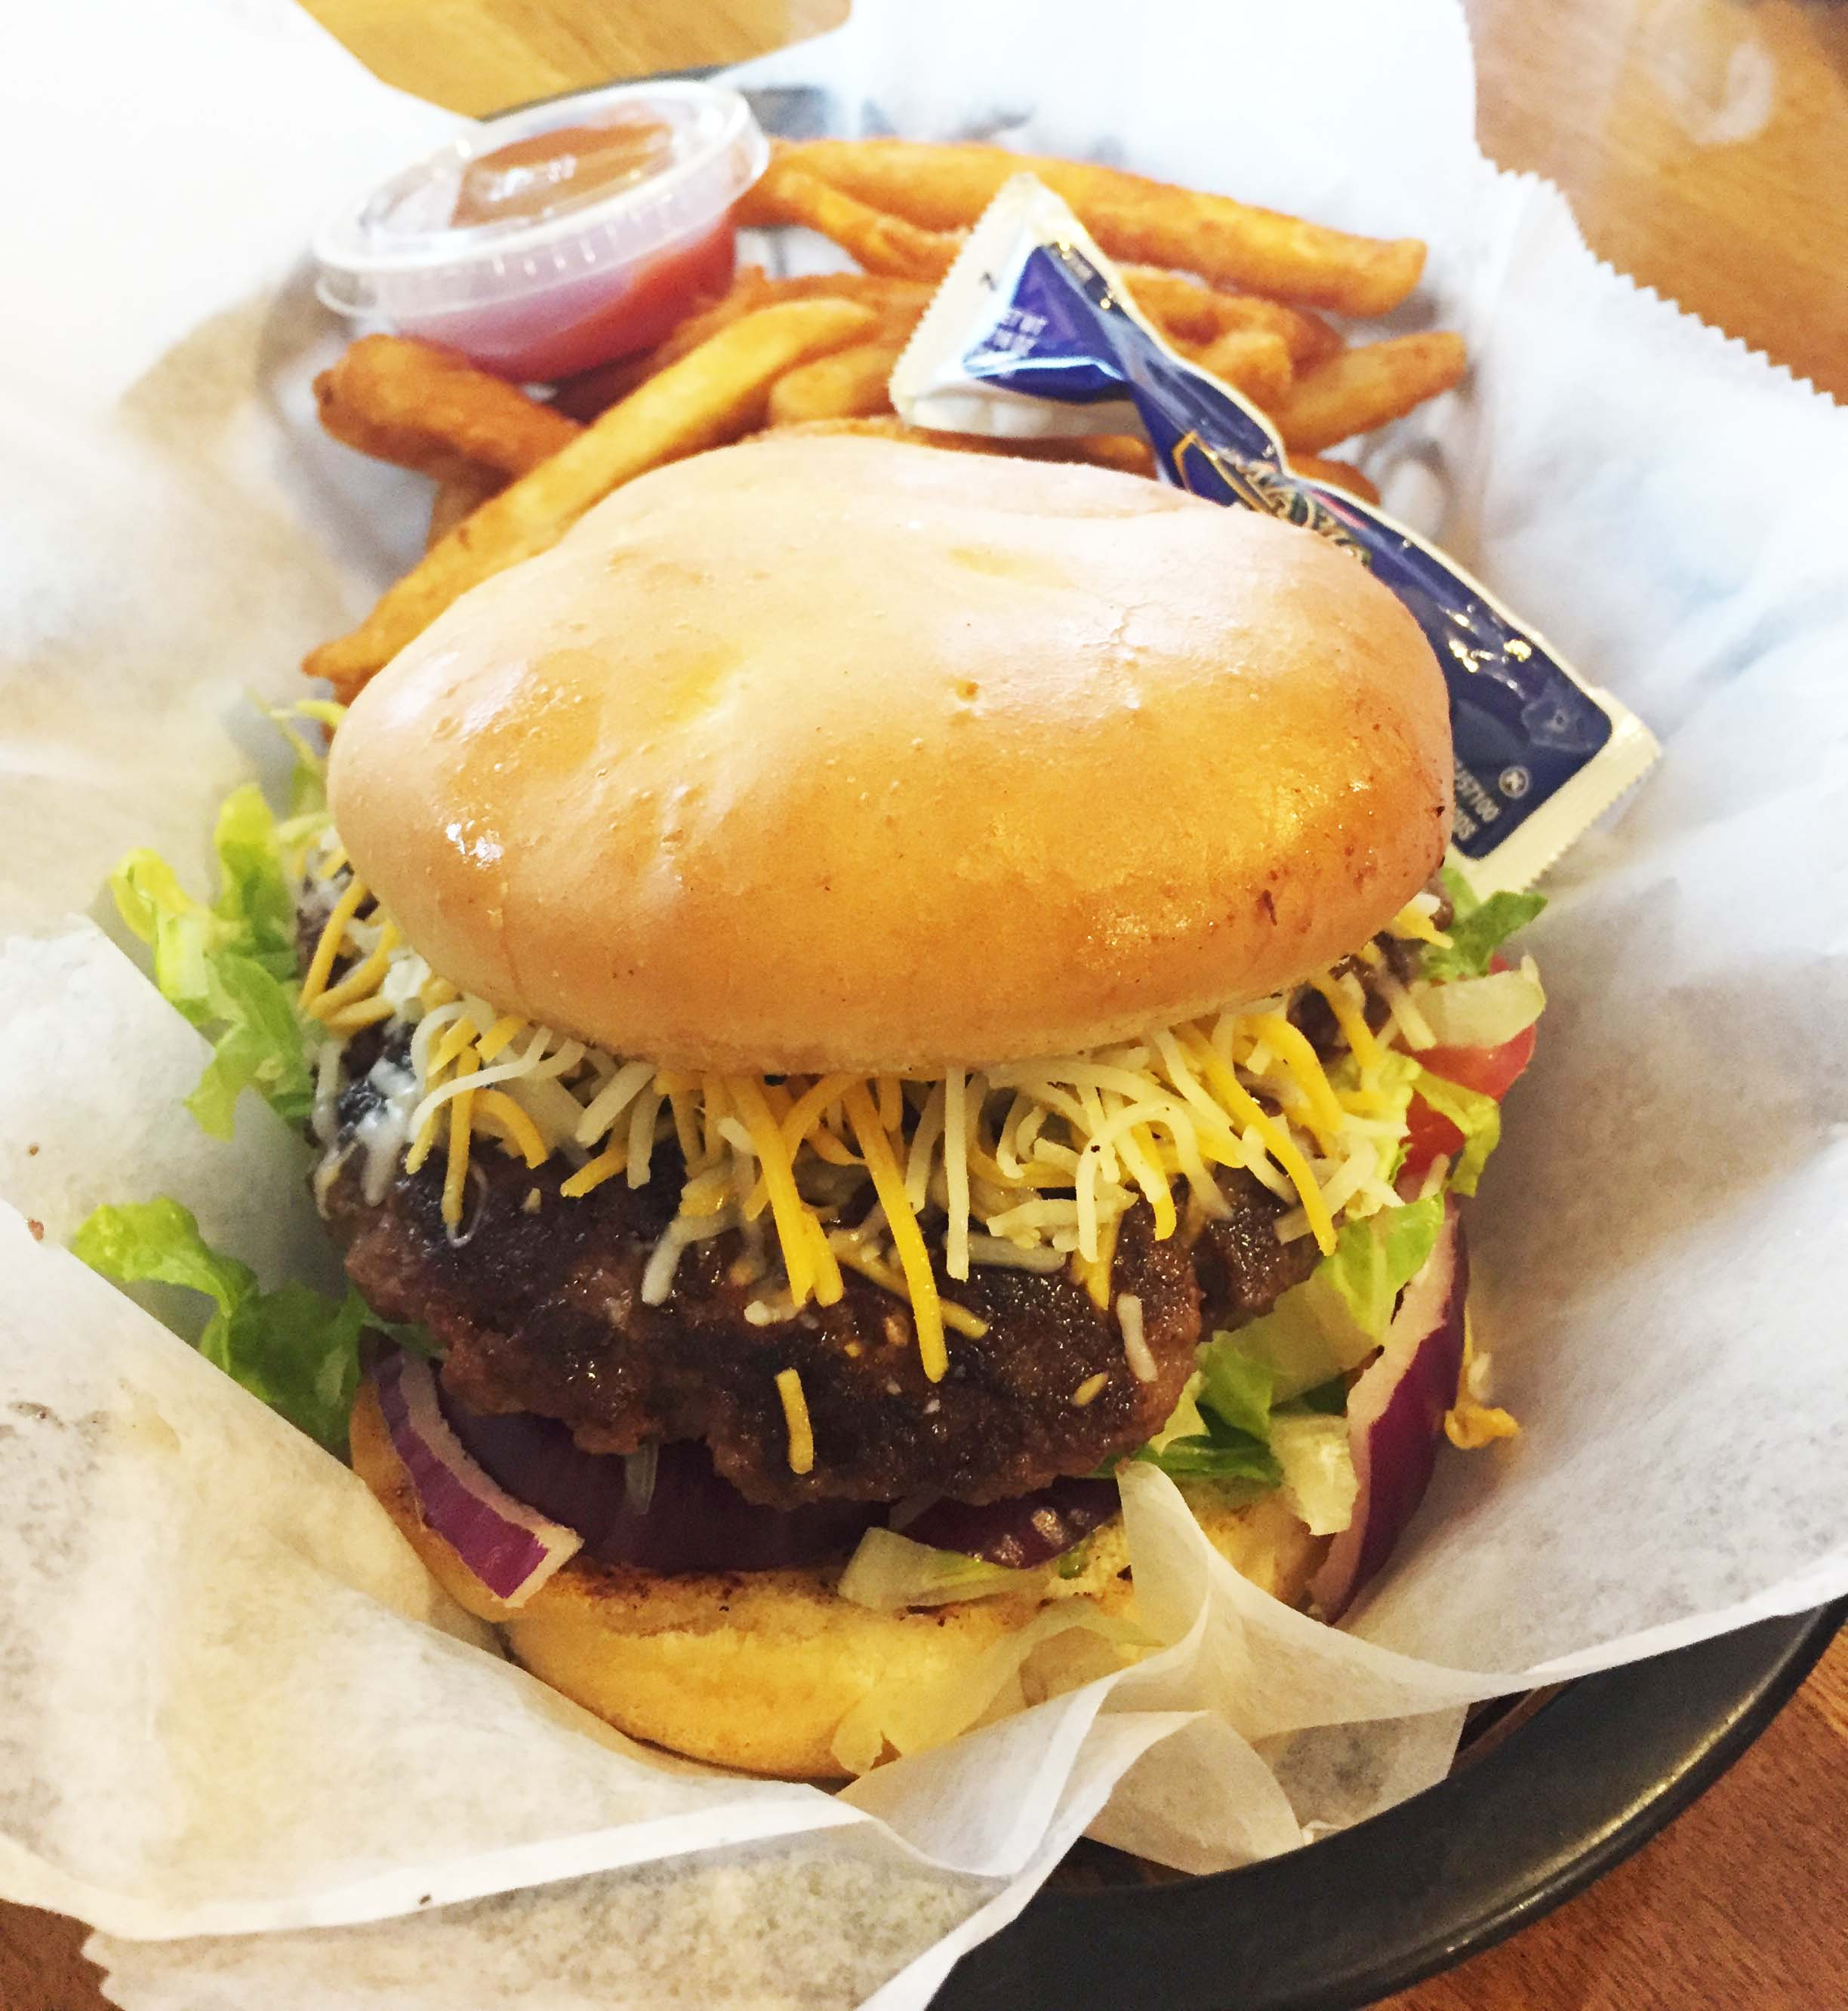 Cheeseburger - Taste of Louisiana Cafe Denham Springs